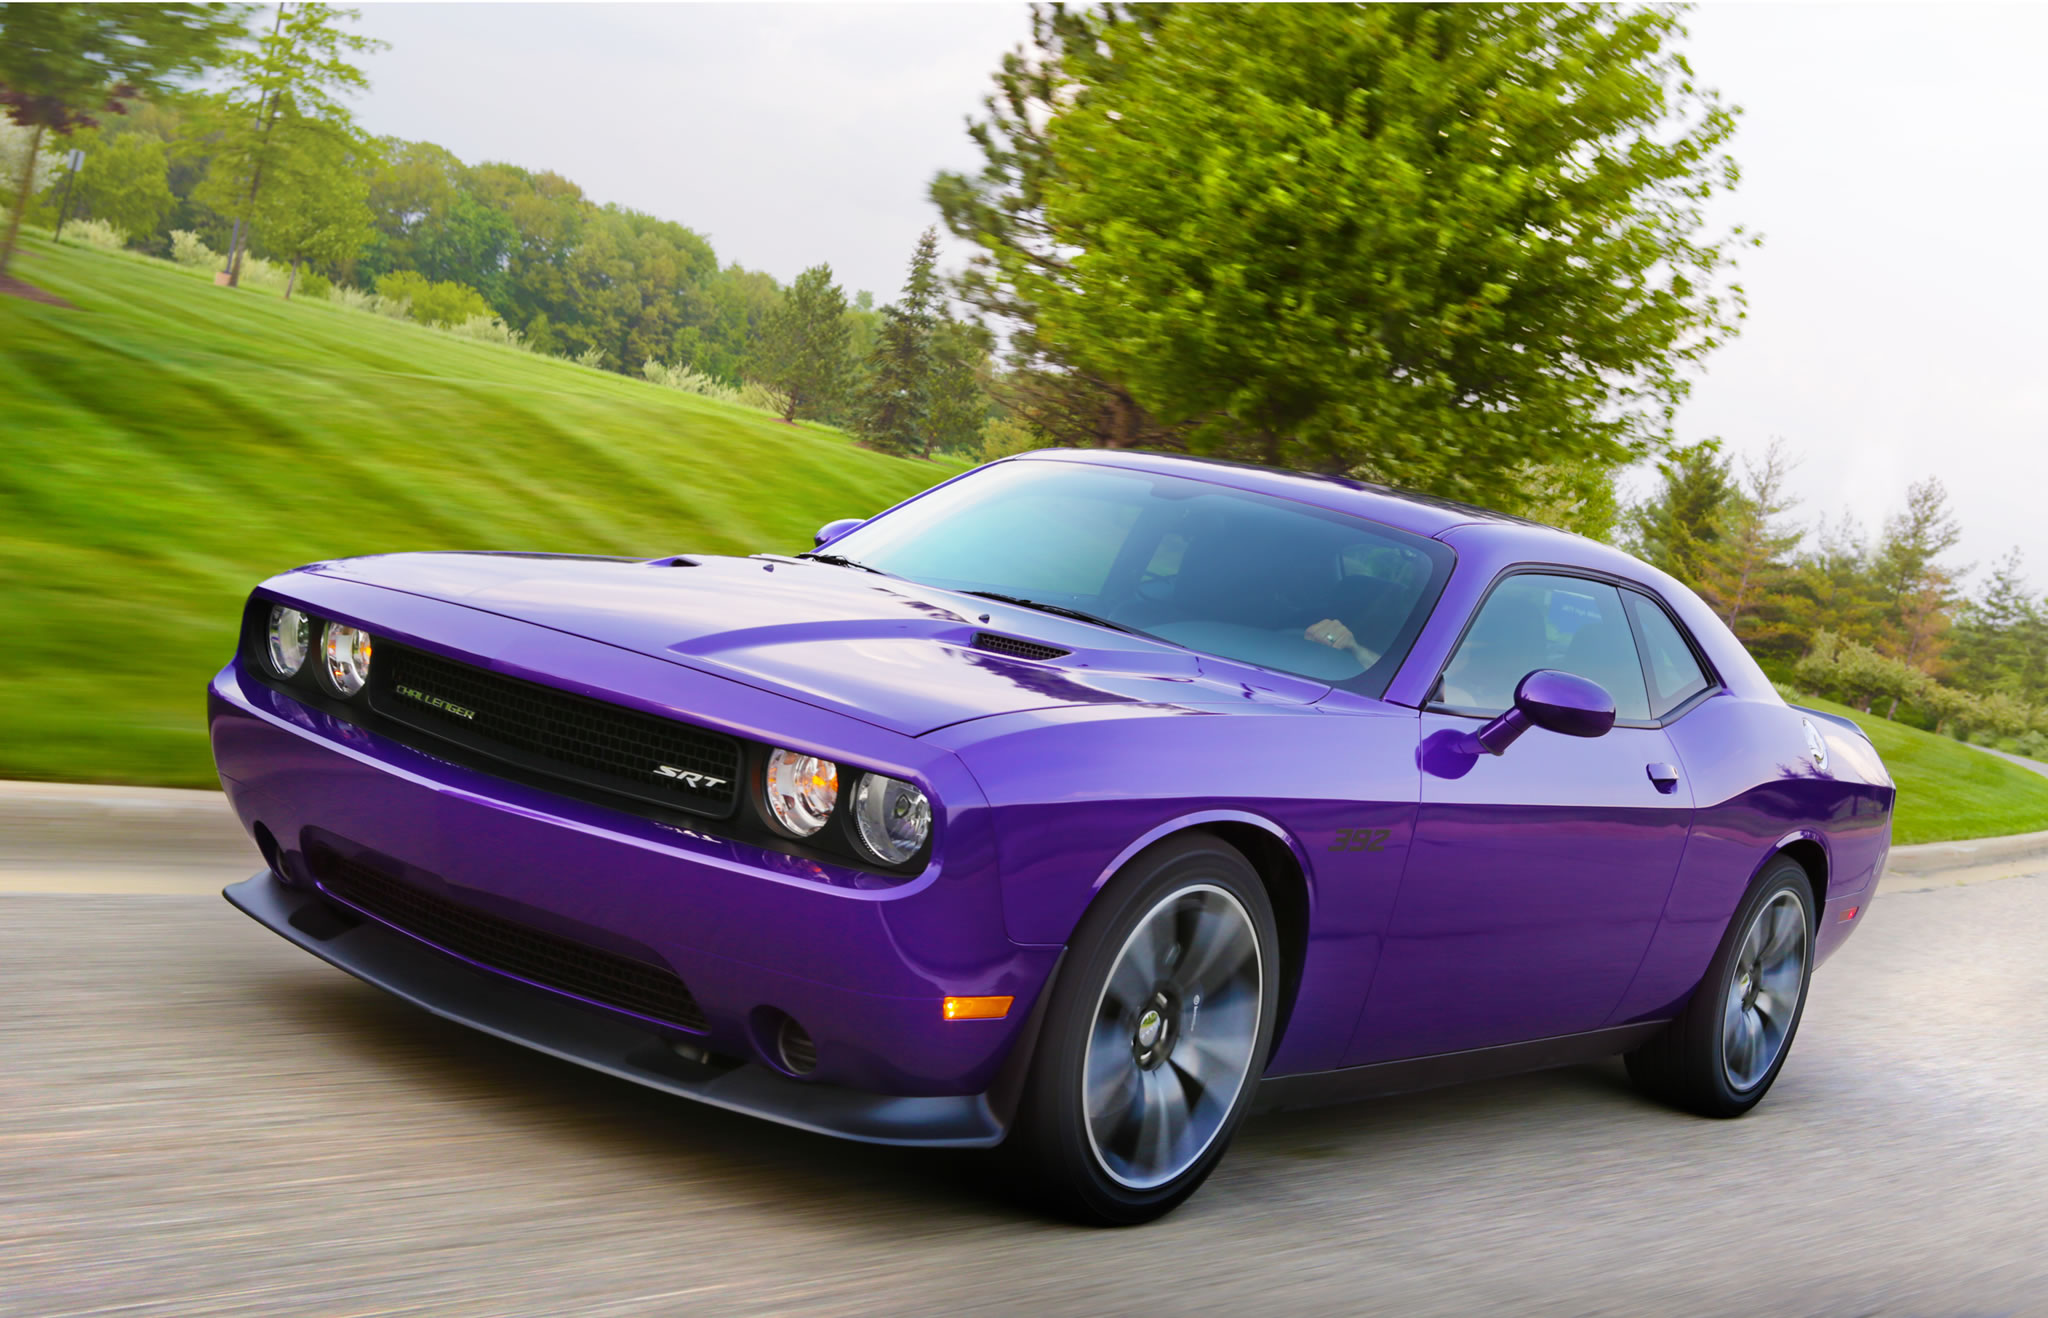 2014 Dodge Challenger Srt8 Front Photo Plum Crazy Pearl